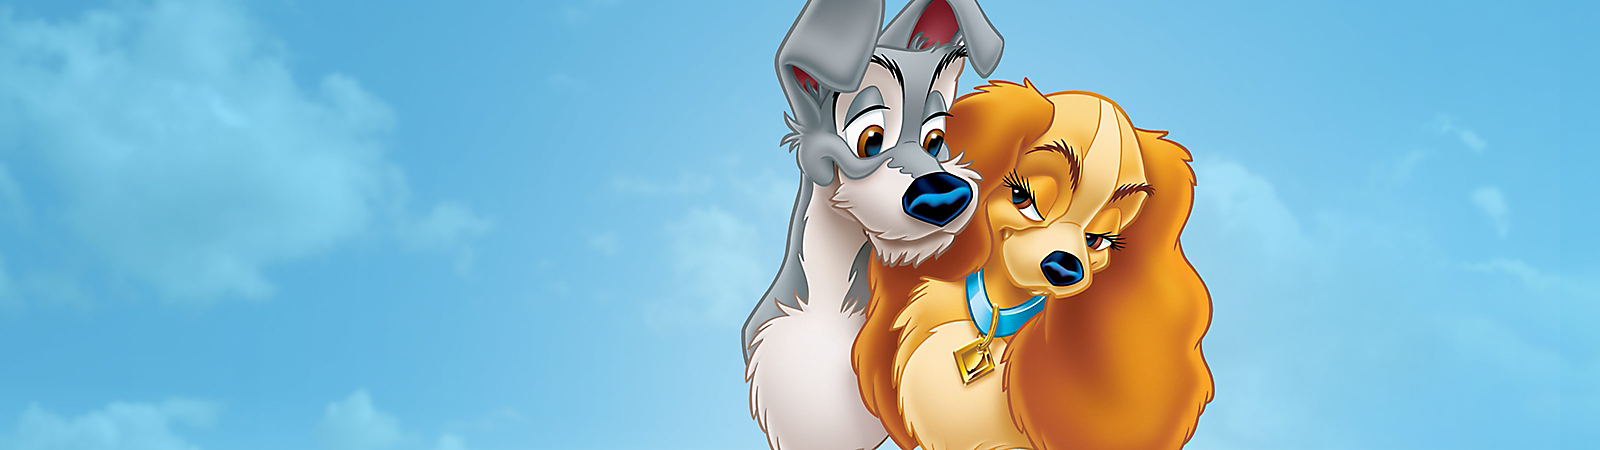 Lady and the Tramp | shopDisney